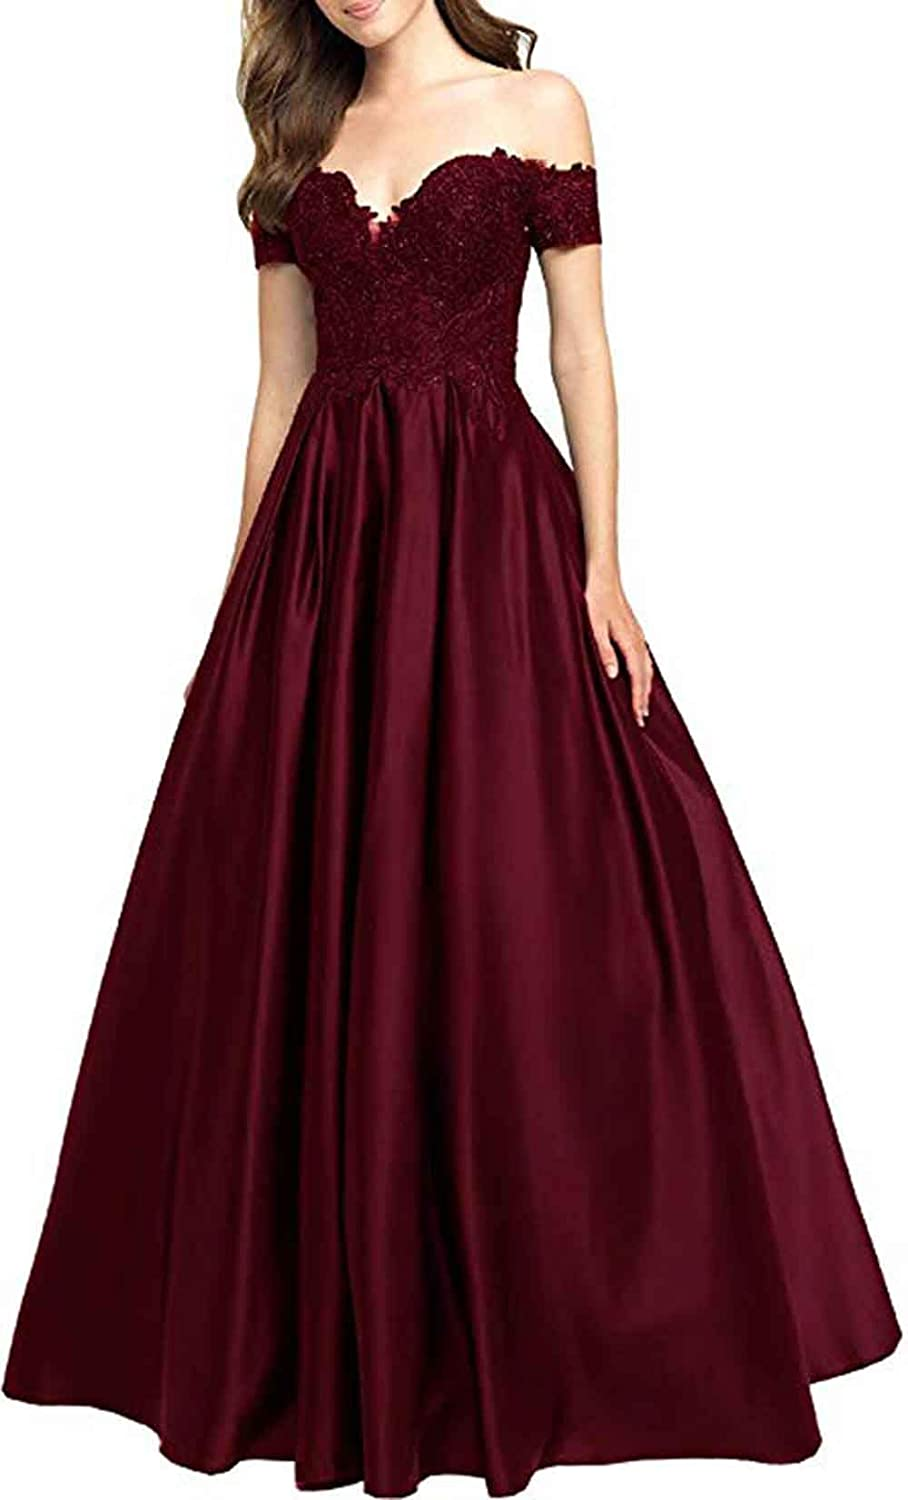 Burgundy Rmaytiked Womens Off The Shoulder Prom Dresses Long 2019 A Line Satin Evening Formal Gown with Lace Applique